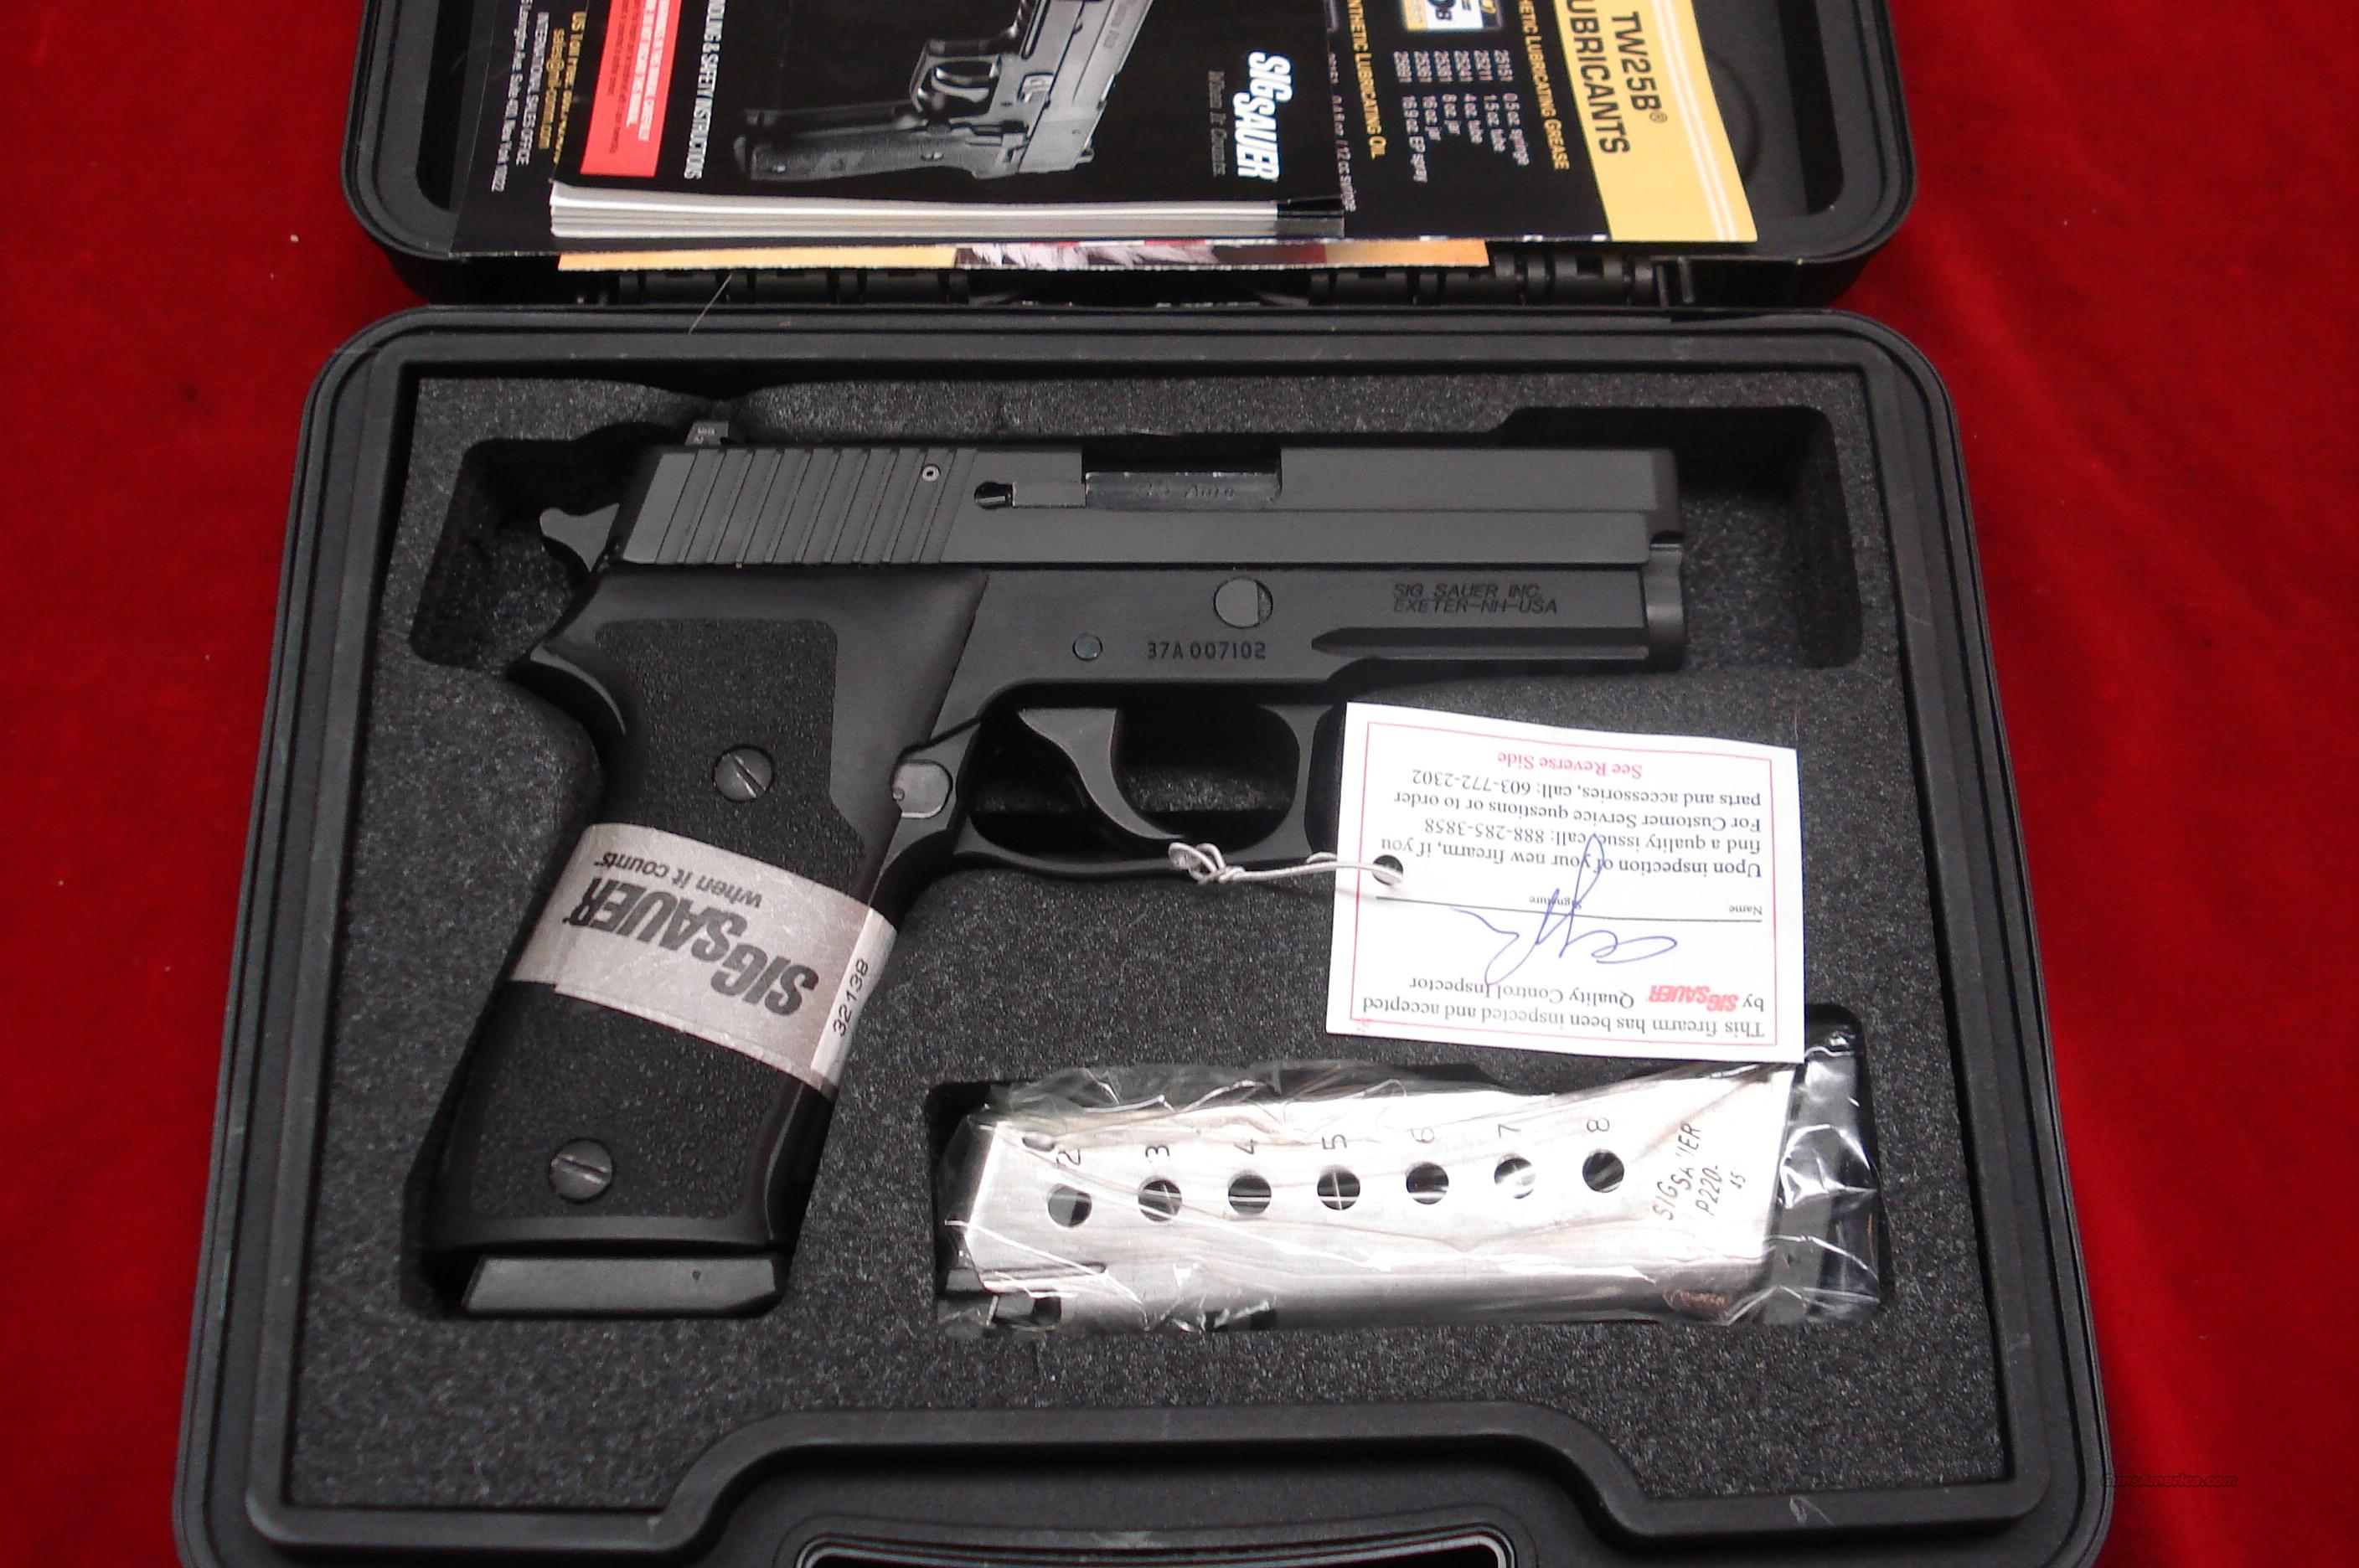 SIG SAUER P220 CARRY 45ACP WITH NIGHT SIGHTS NEW  Guns > Pistols > Sig - Sauer/Sigarms Pistols > P220